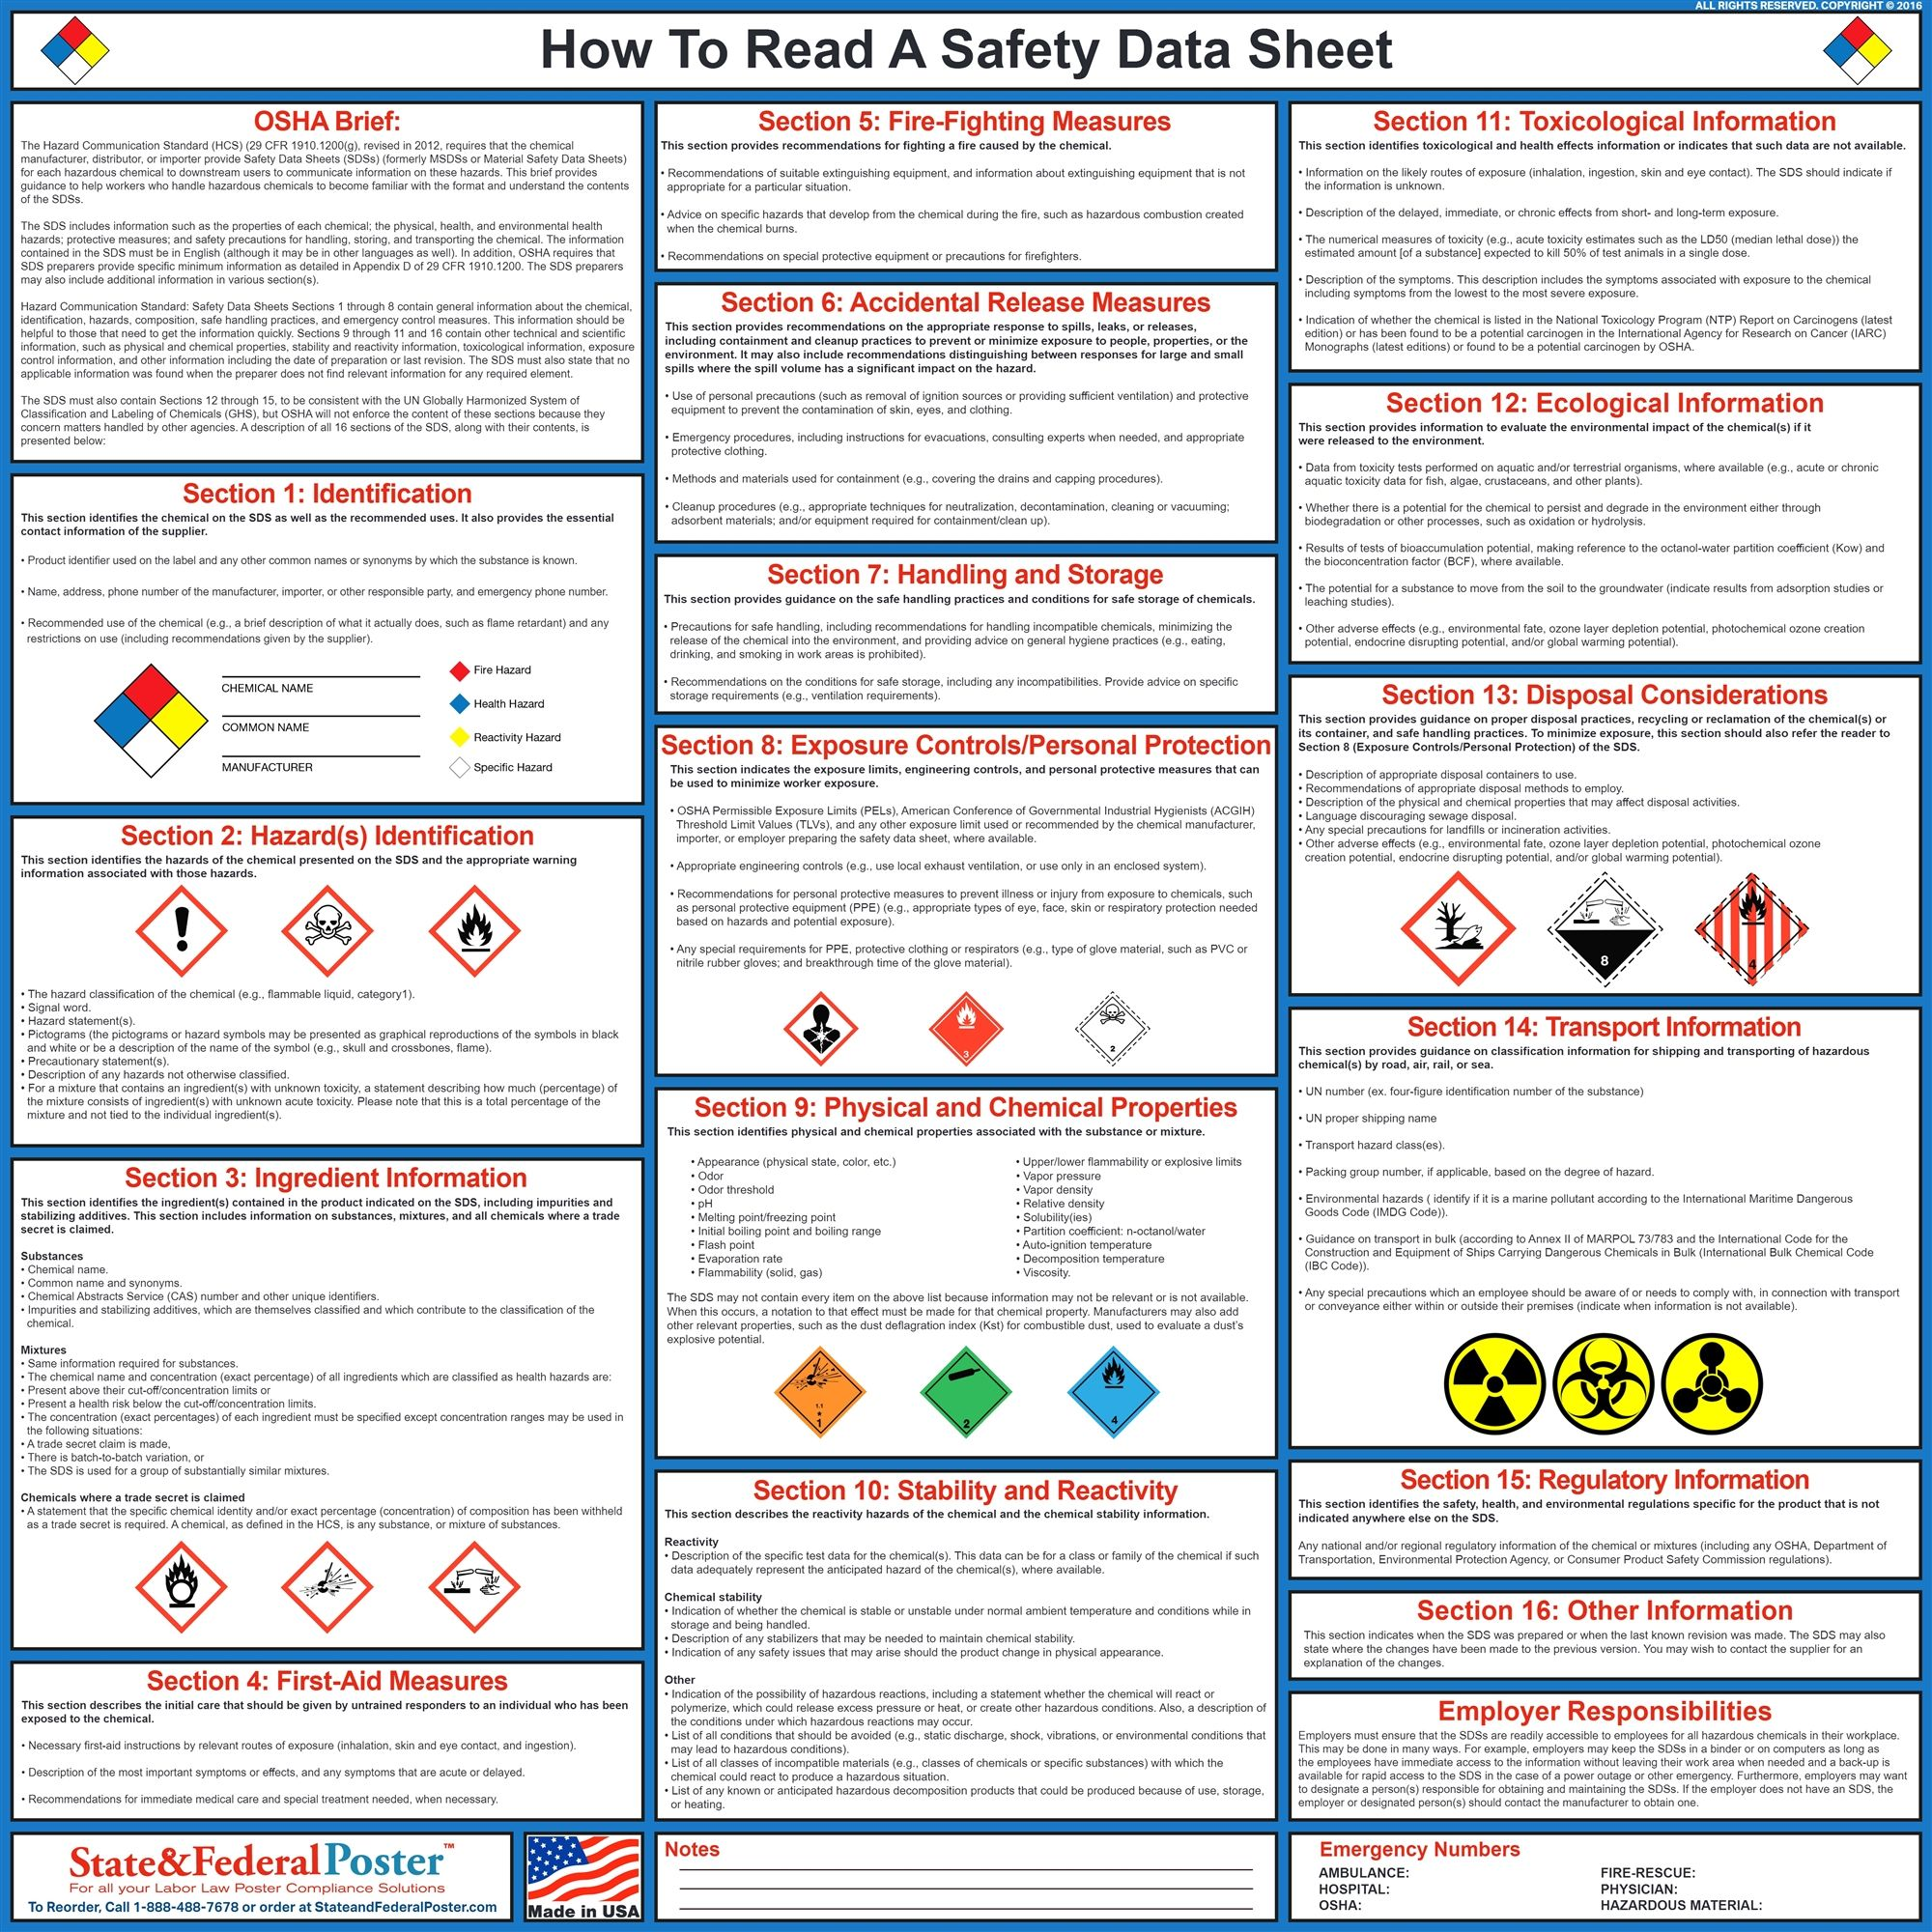 How To Read A Safety Data Sheet Data Sheets Health And Safety